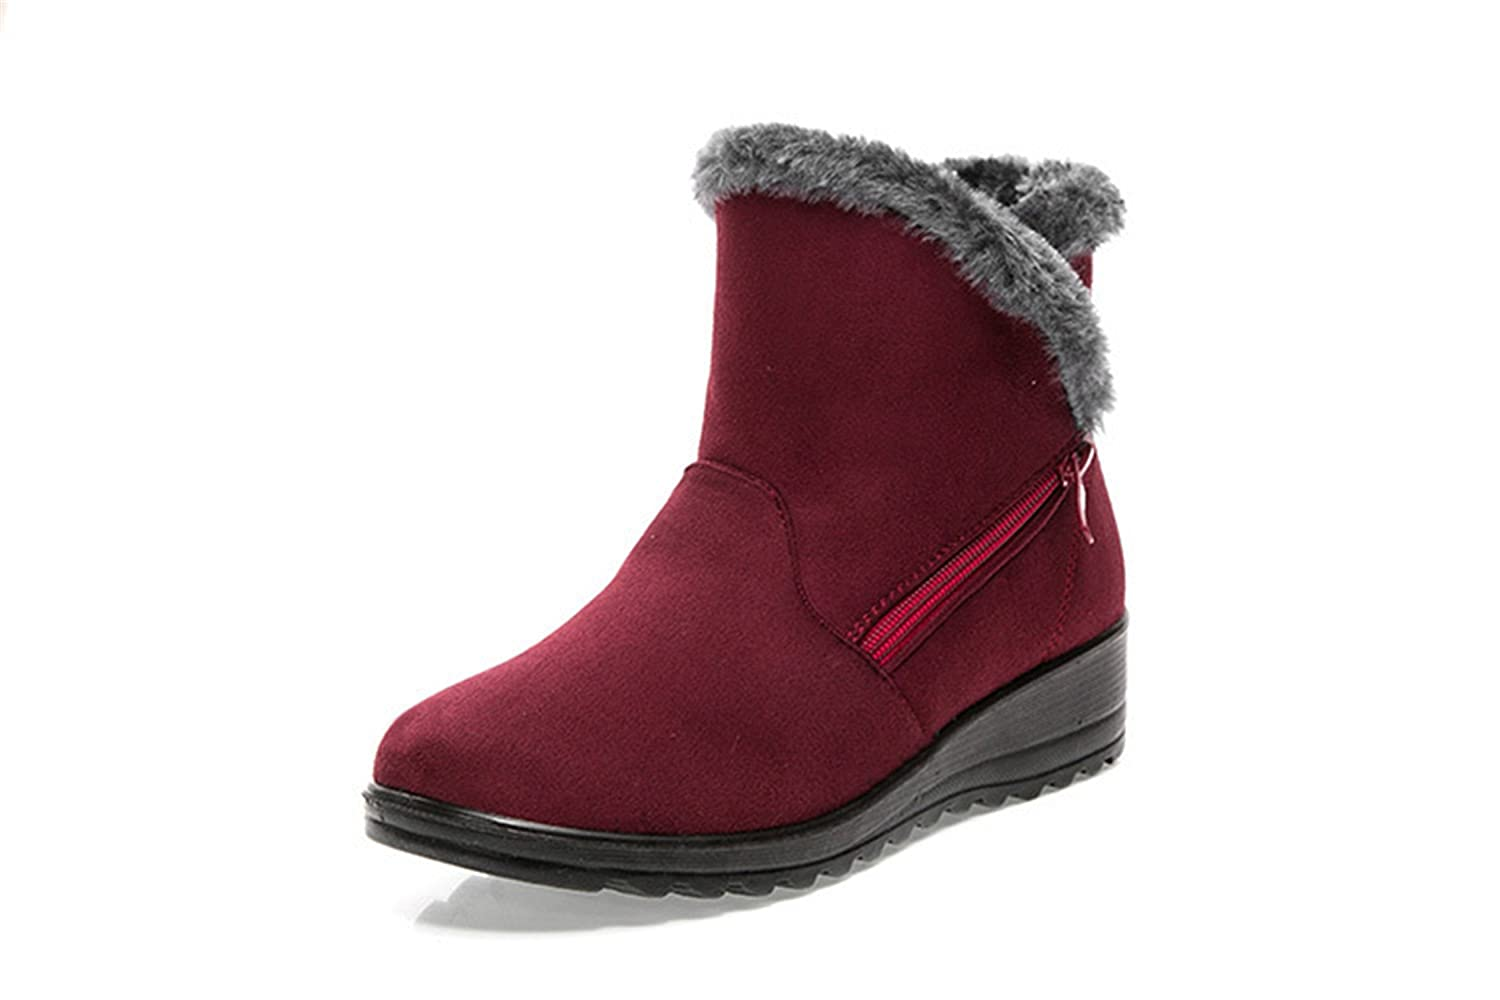 123768d58dd0e Dahanyi Stylish Women Winter Shoes Women's Ankle Boots The New 3 Color  Fashion Casual Fashion Flat Warm Woman Snow Boots